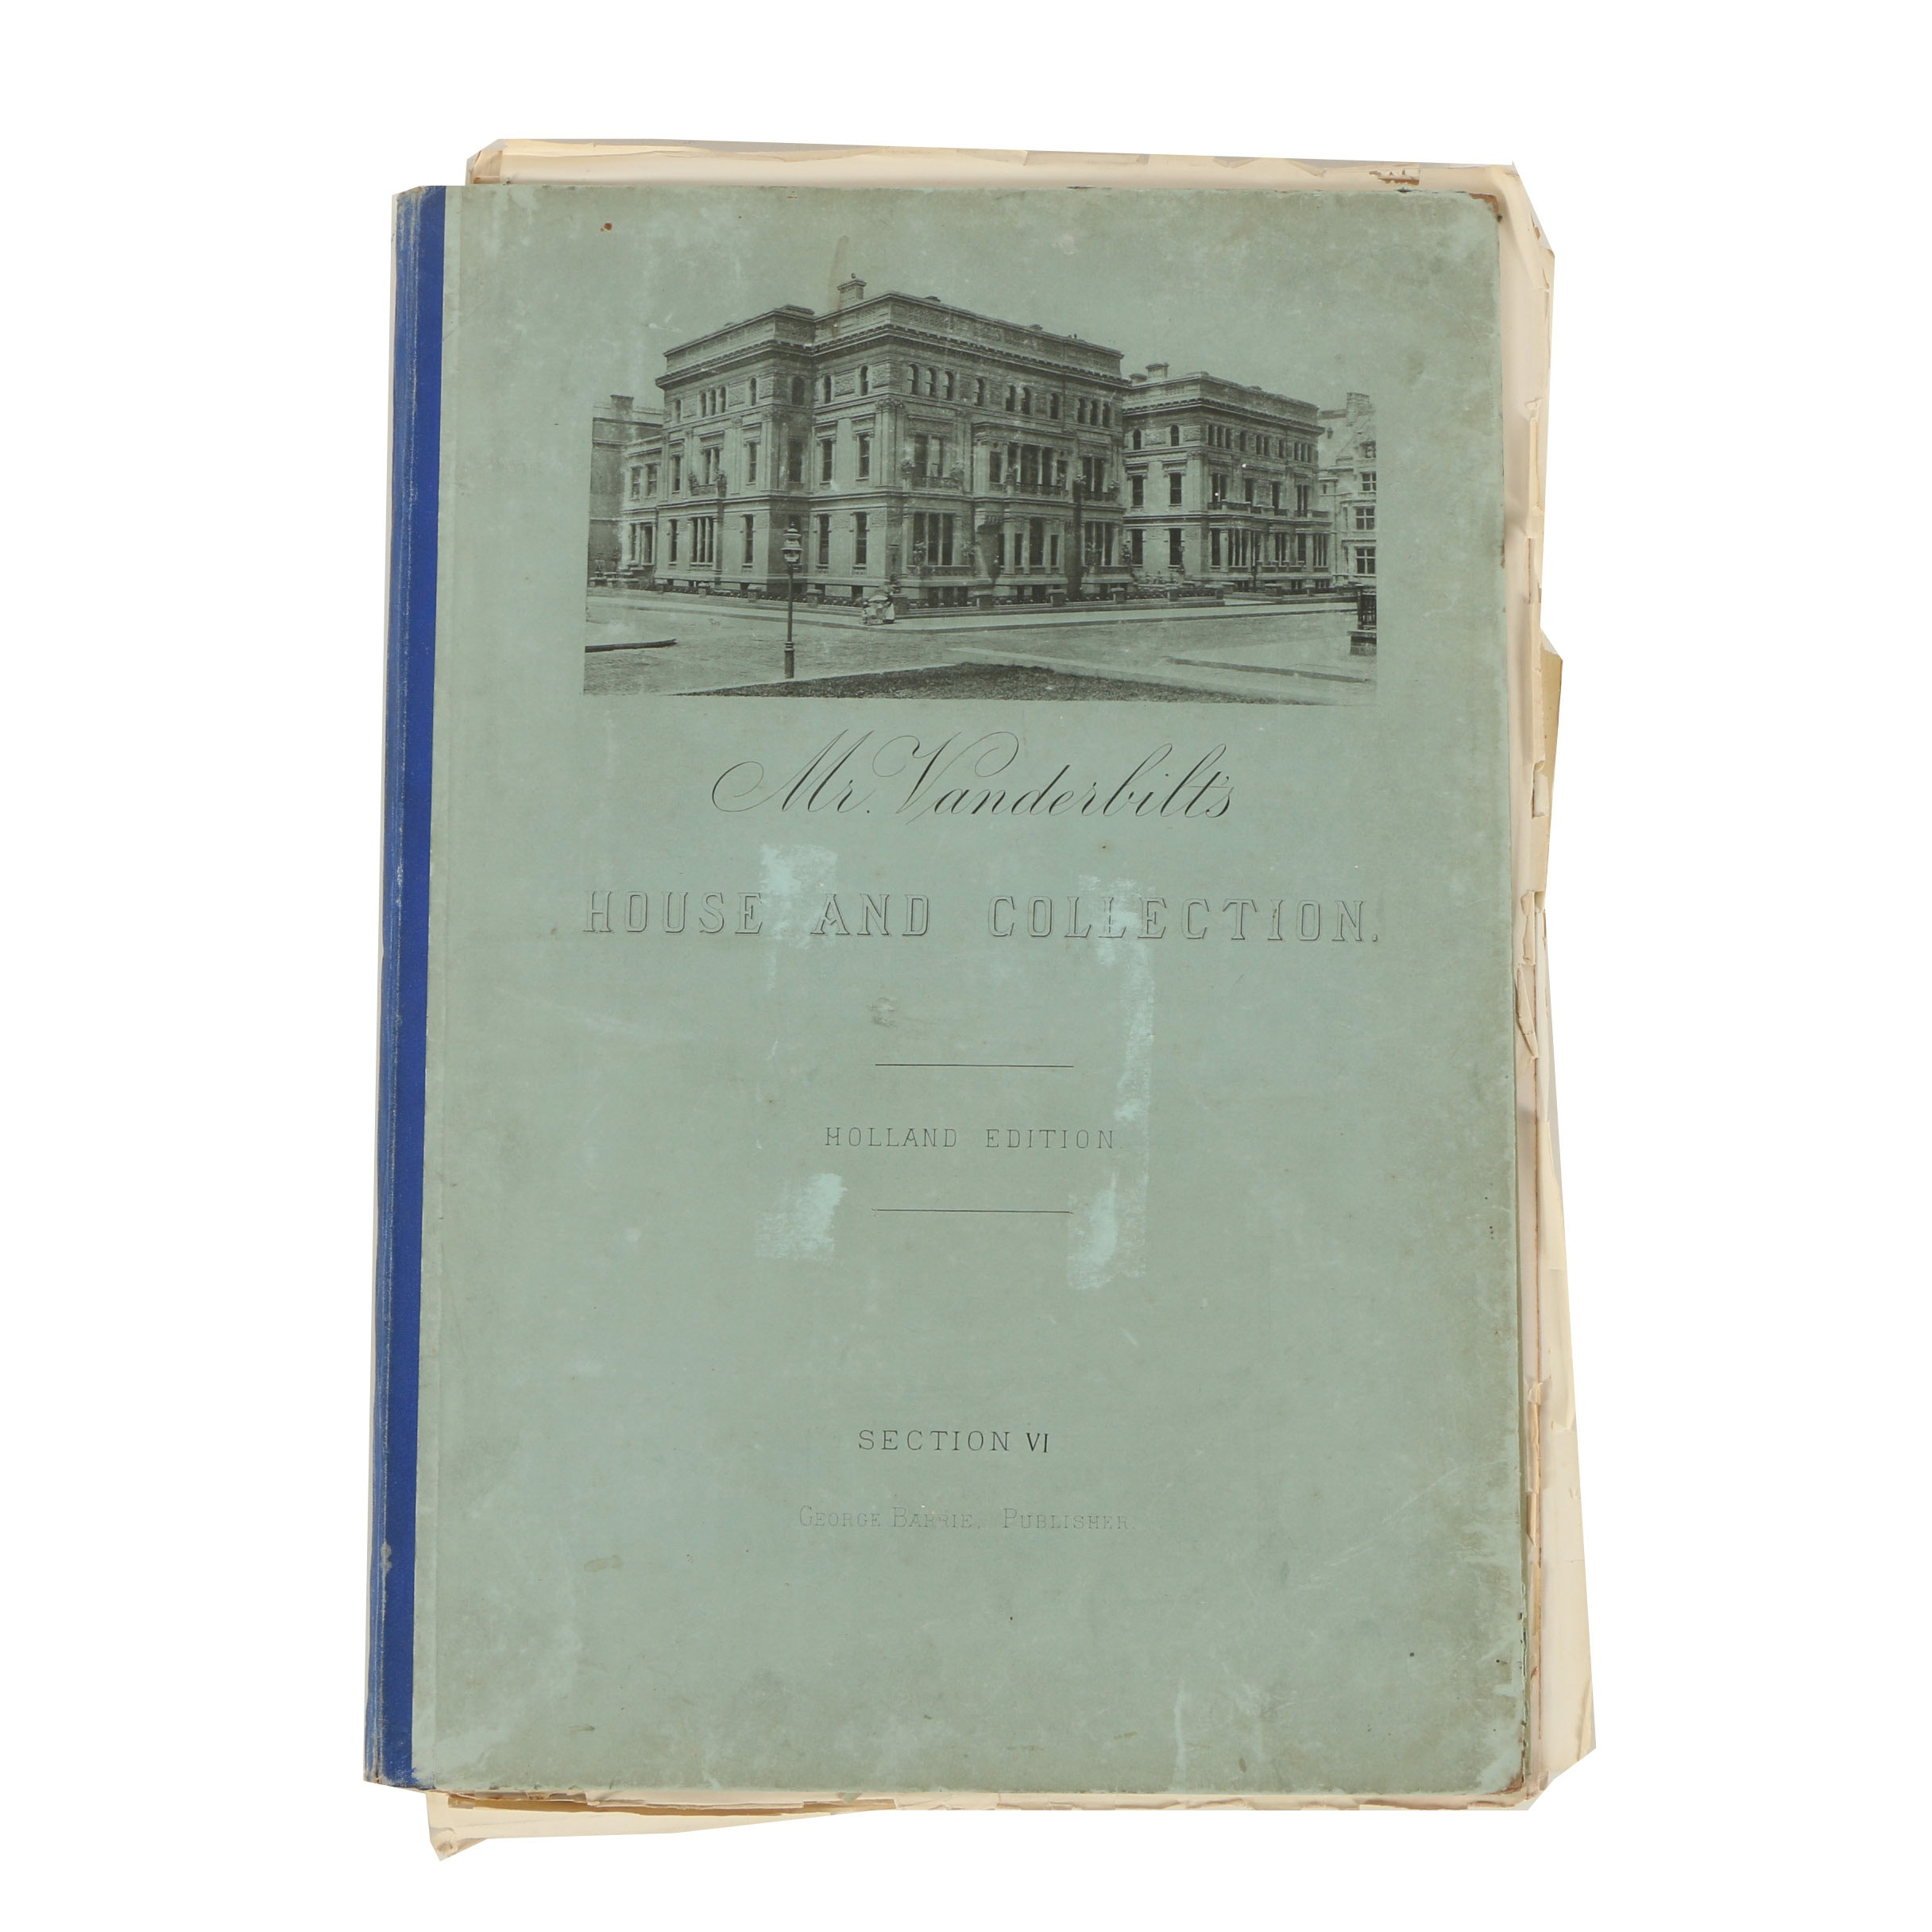 """1883 """"Mr. Vanderbilt's House and Collection"""" Holland Edition, Section VI"""